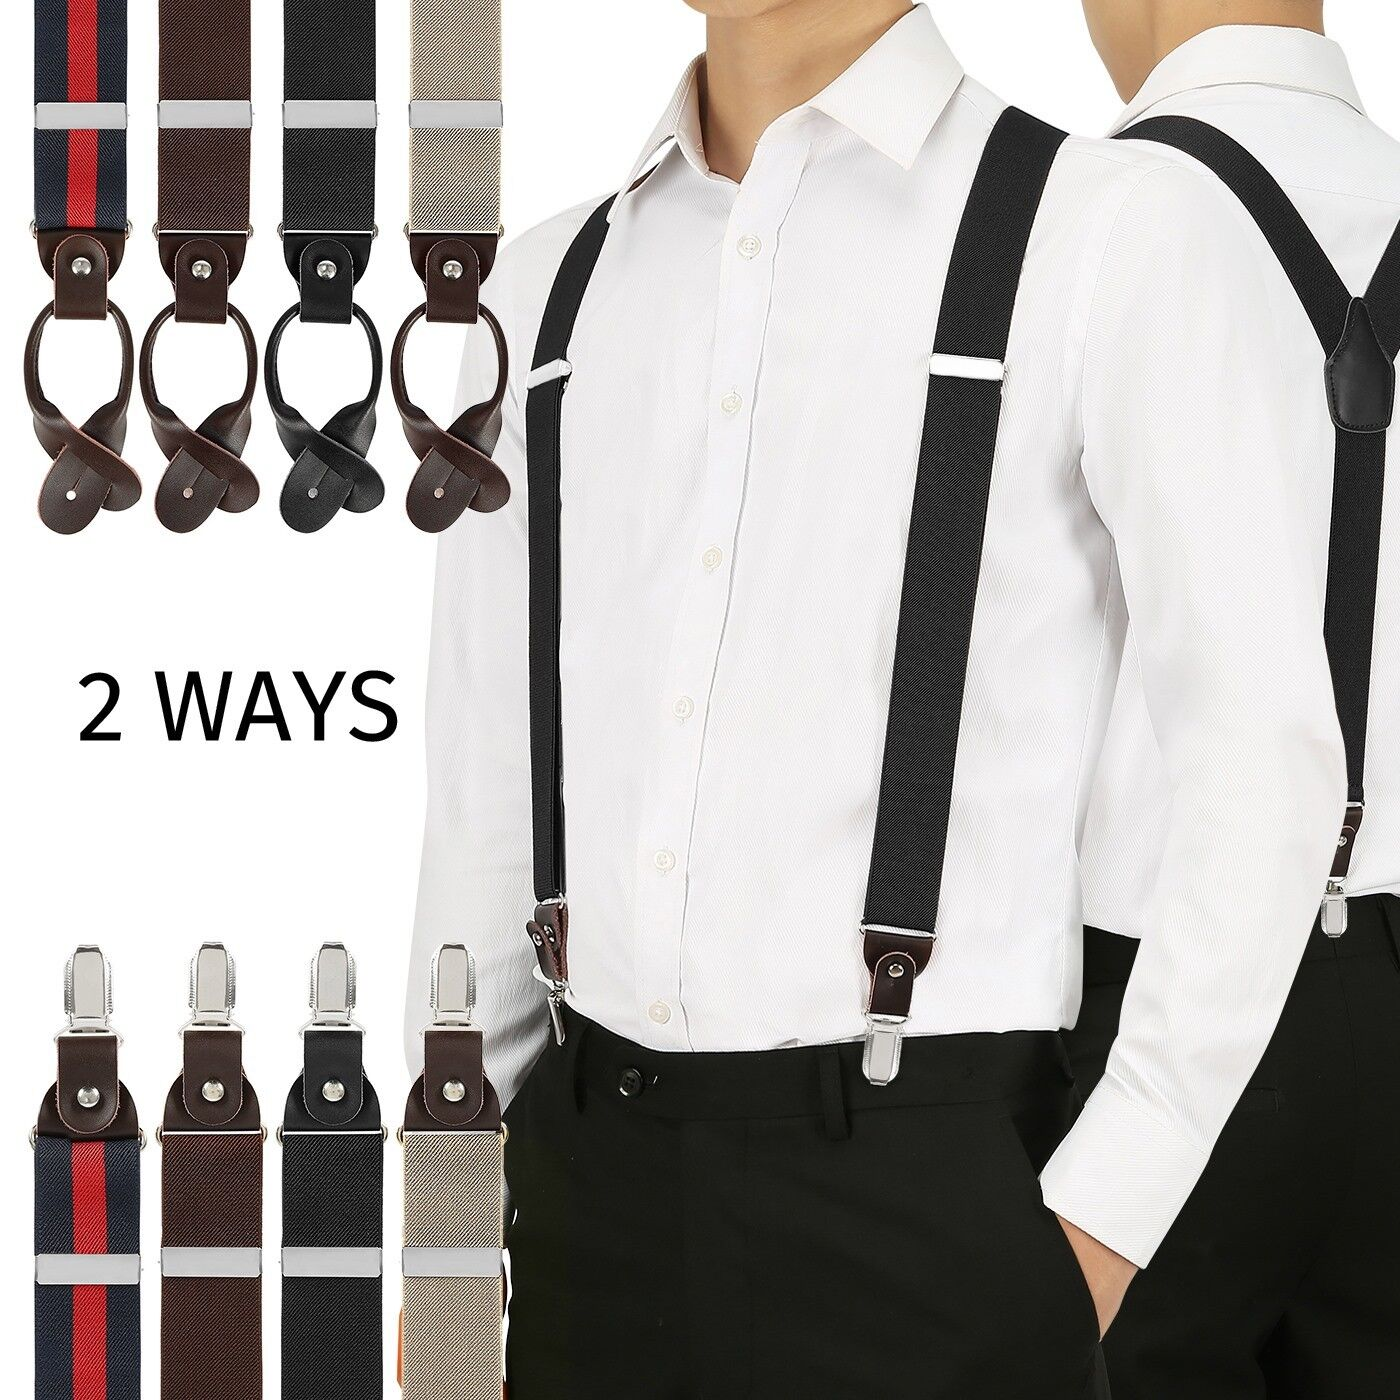 Convertible Suspenders for Men Button End Clip On Adjustable